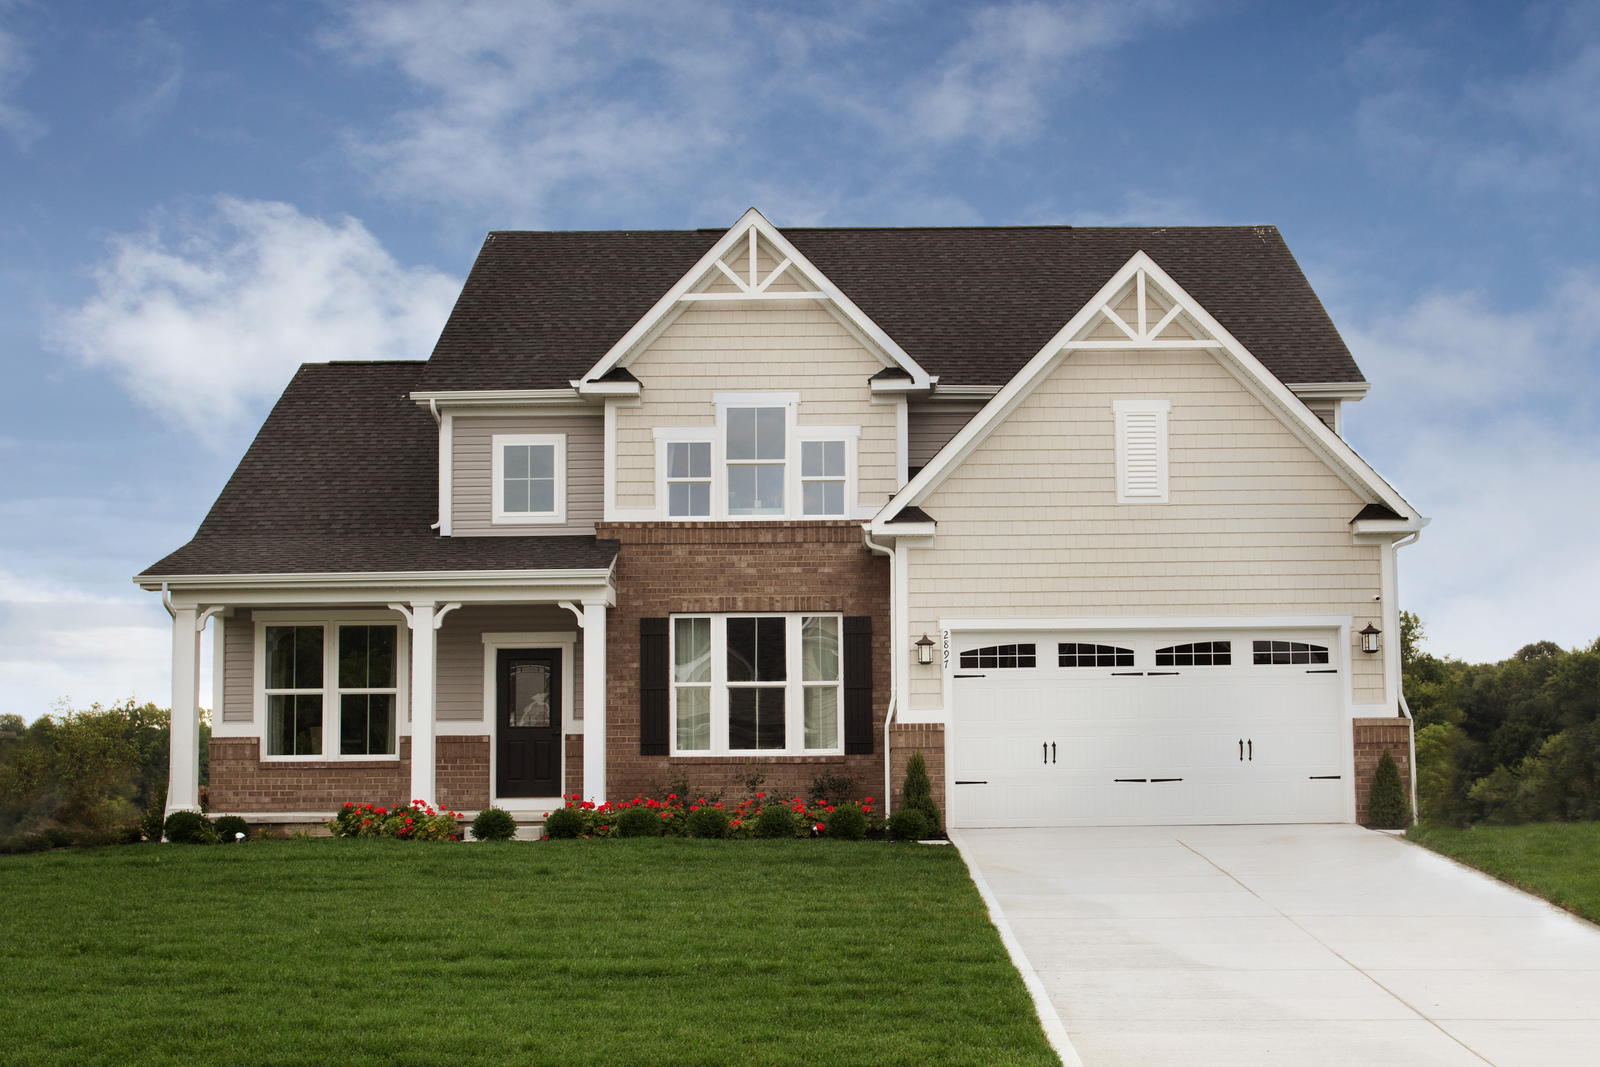 New Homes for sale at Hunting Meadows in Columbia Station